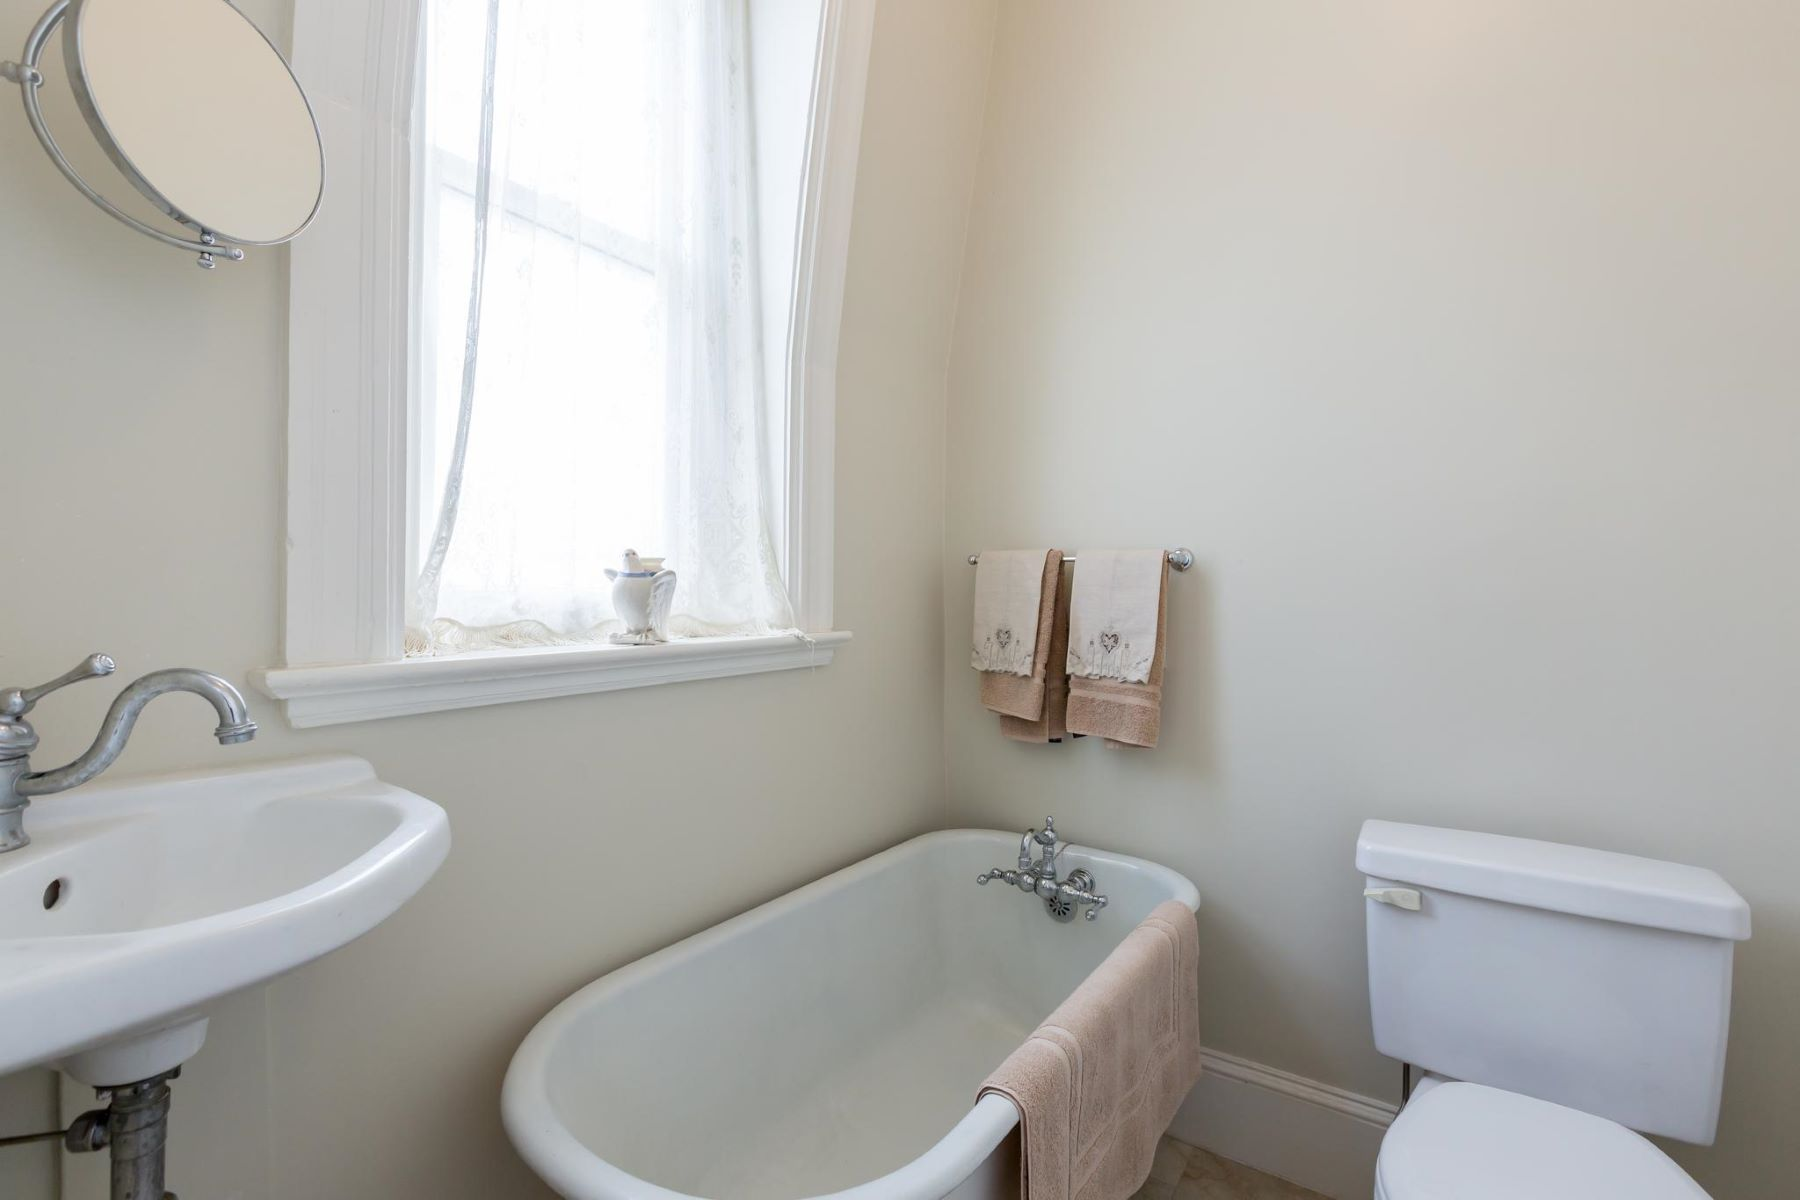 Additional photo for property listing at 1915 S St Nw 1915 S St Nw Washington, District Of Columbia 20009 United States